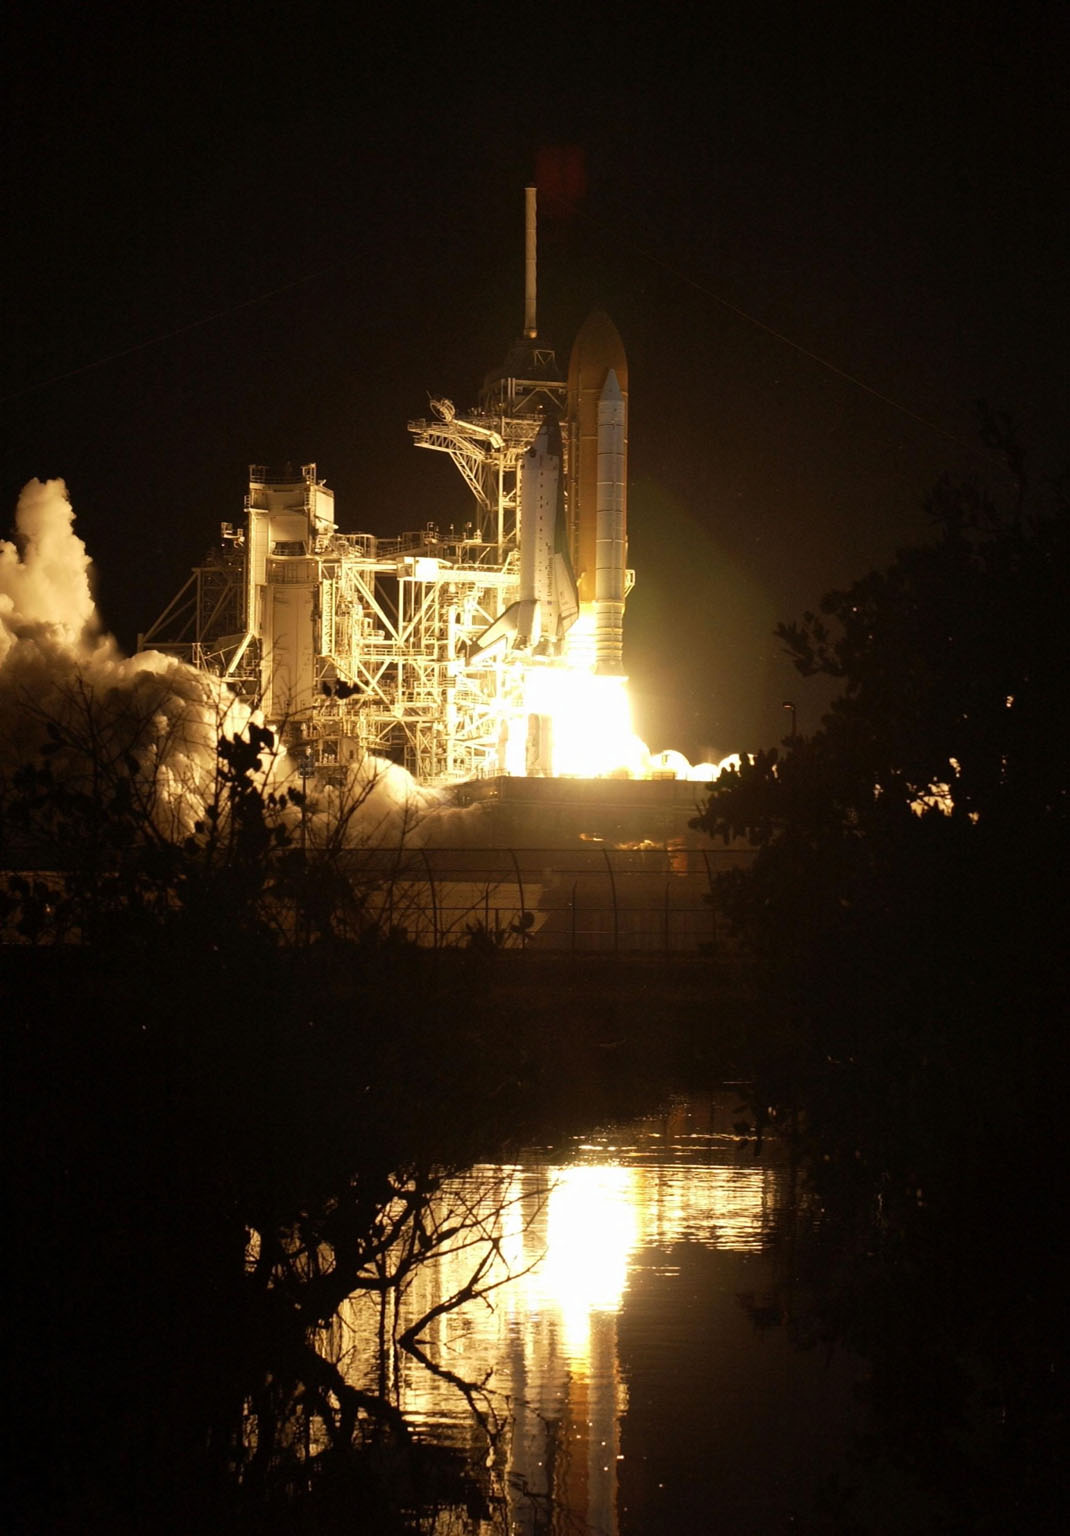 KENNEDY SPACE CENTER, Fla. - Space Shuttle Columbia spews flames and smoke as it leaps off the launch pad on its 27th flight into space on mission STS-109. Liftoff occurred at 6:22:02:08 a.m. EST (11:22:02:08 GMT). The goal of the mission is the maintenance and upgrade of the Hubble Space Telescope, to be carried out in five spacewalks. The crew of STS-109 comprises Commander Scott D. Altman, Pilot Duane G. Carey, Payload Commander John M. Grunsfeld, and Mission Specialists Nancy Jane Currie, Richard M. Linnehan, James H. Newman and Michael J. Massimino. After an 11-day mission, Columbia is expected to return to Kennedy March 12 about 4:35 a.m. EST (09:35 GMT).